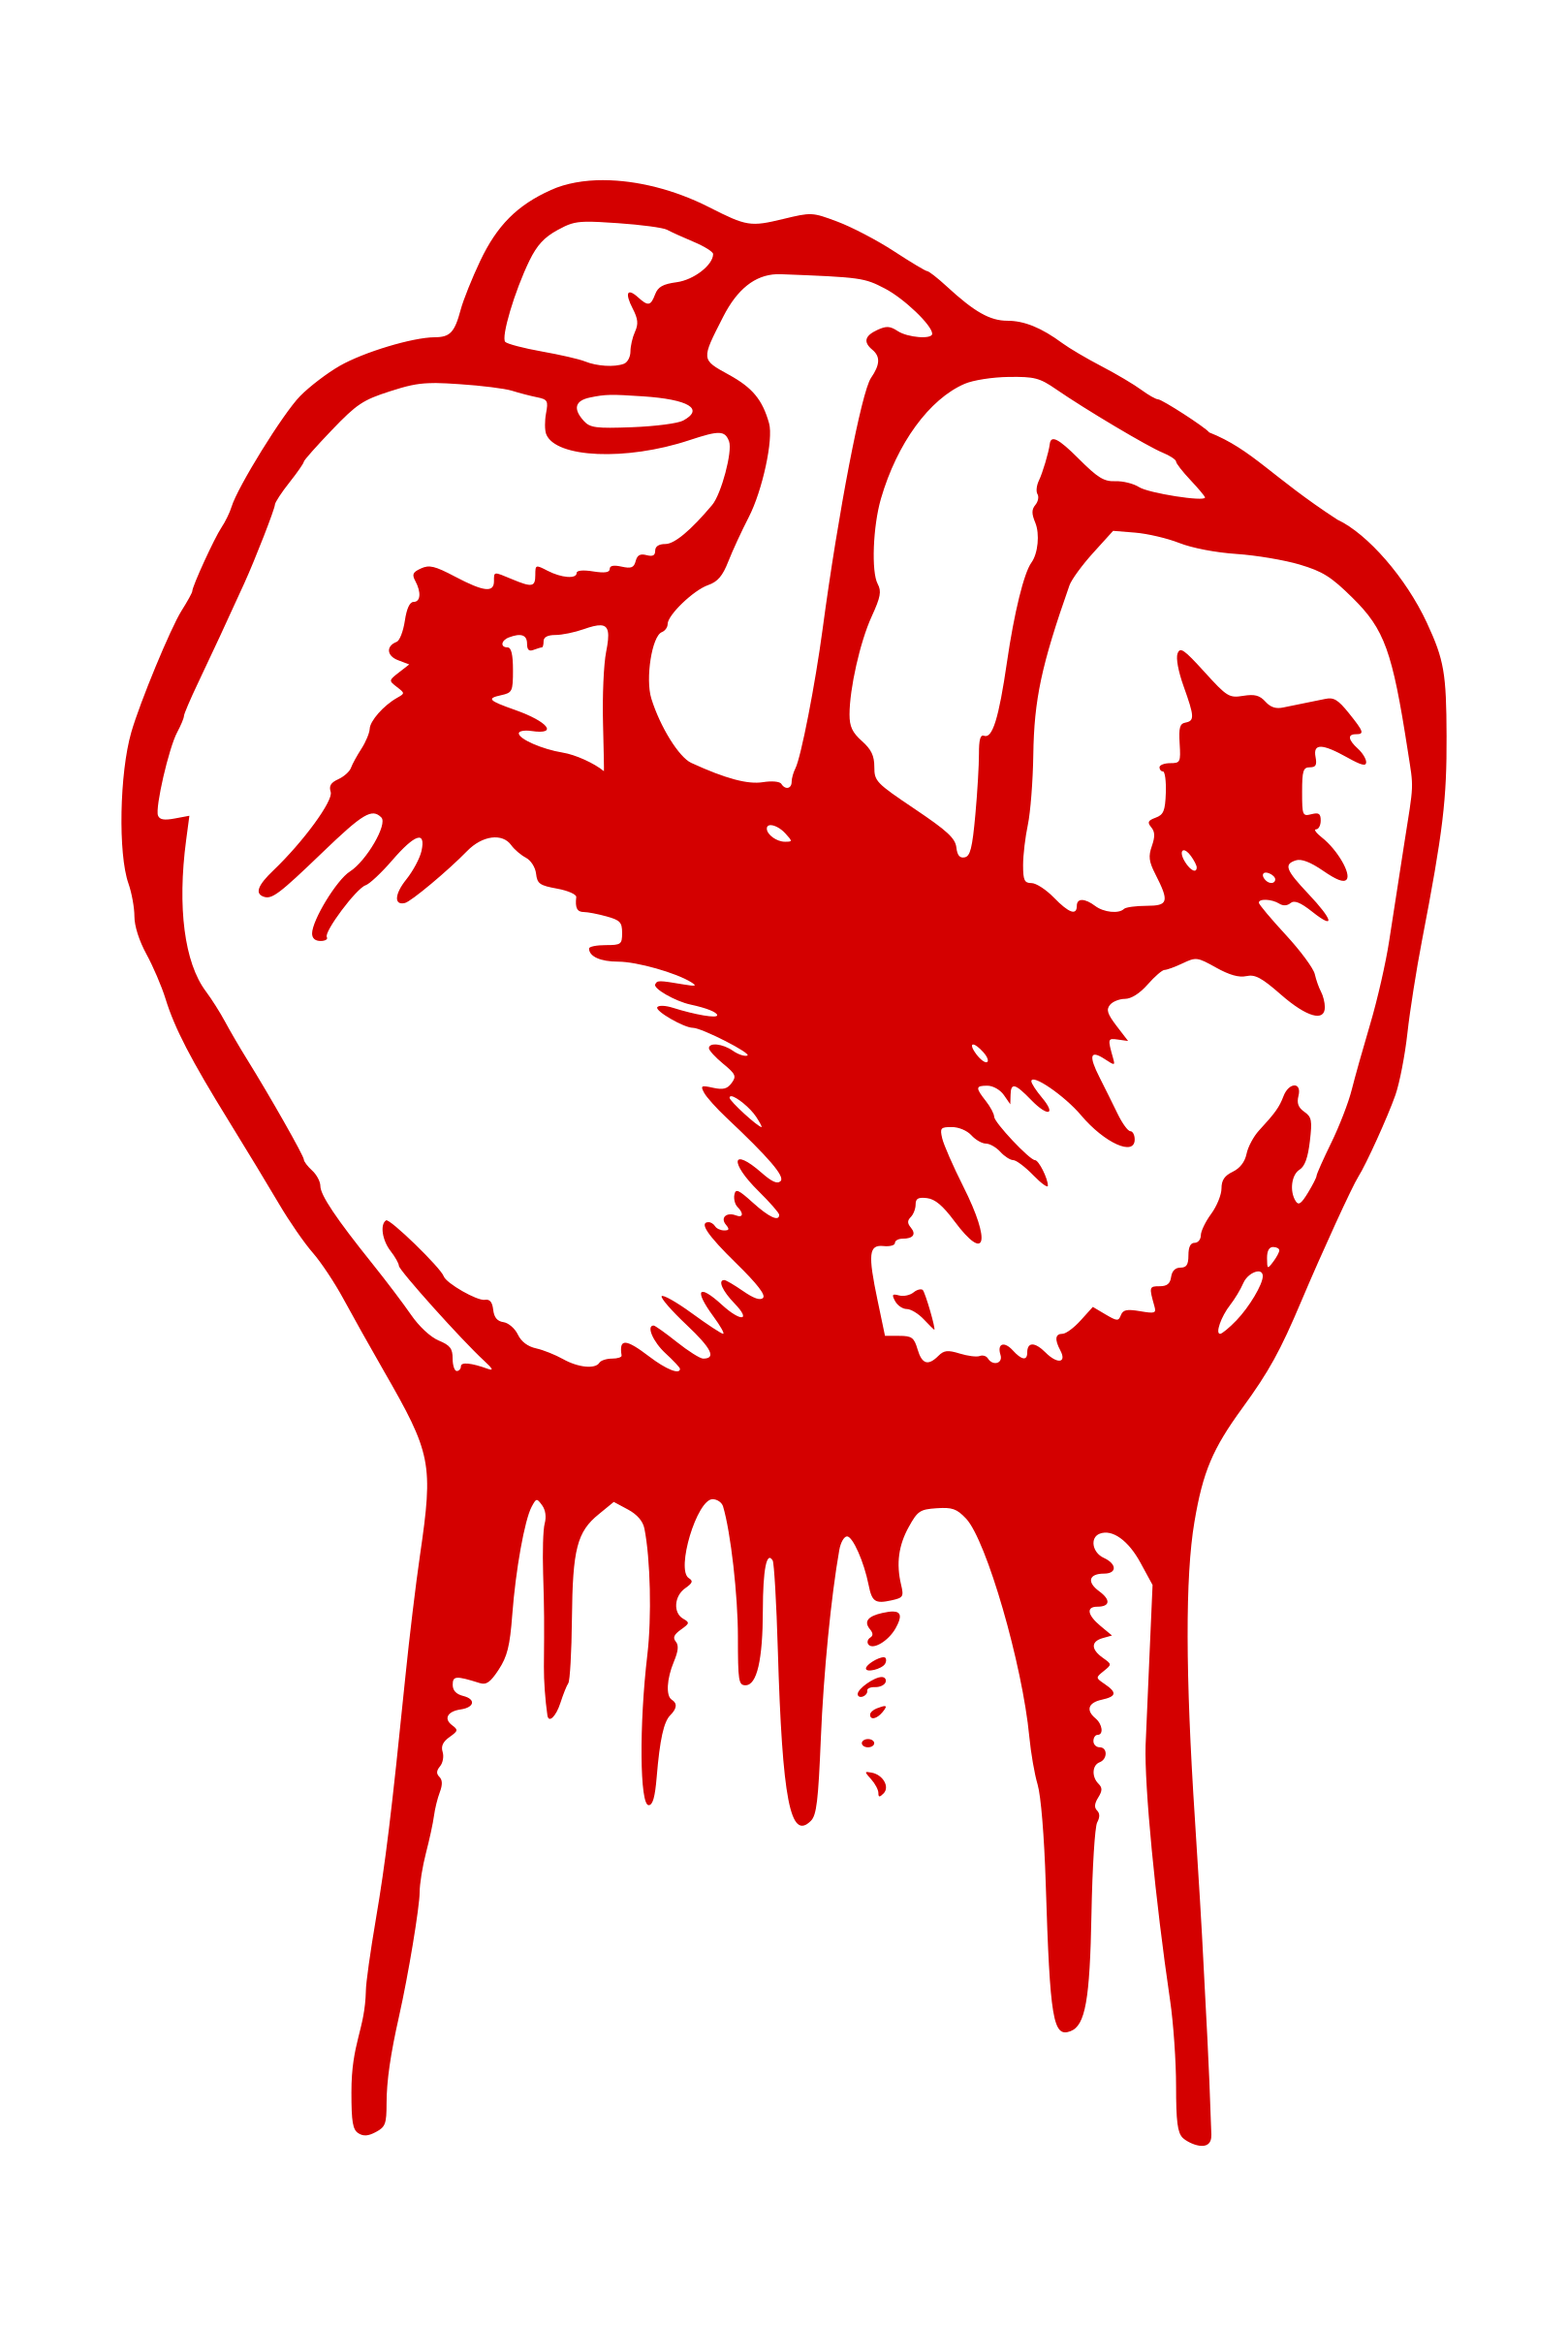 Fist up png. Icons free and downloads